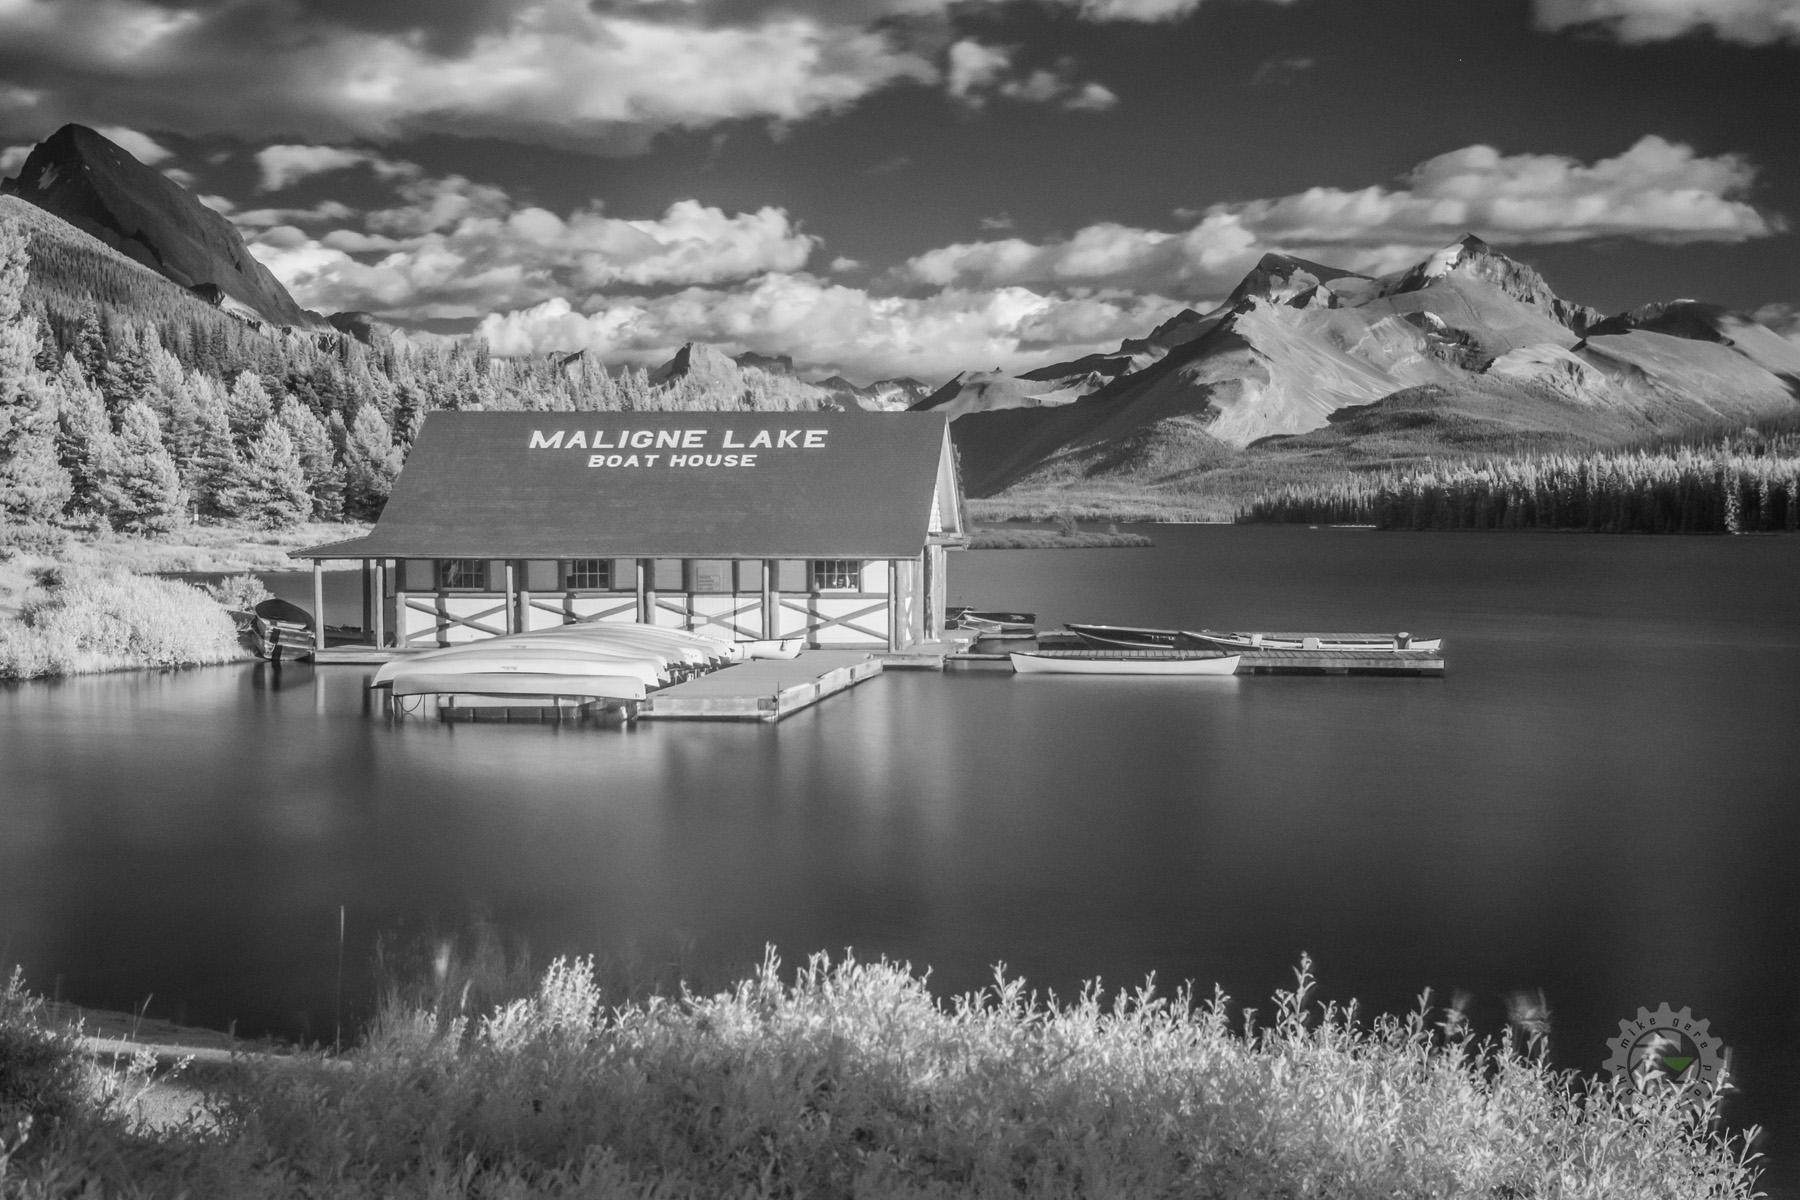 mike,gere,photo,photograhy,jasper,alberta,national,park,landscape,maligne,lake,boat,house,boathouse